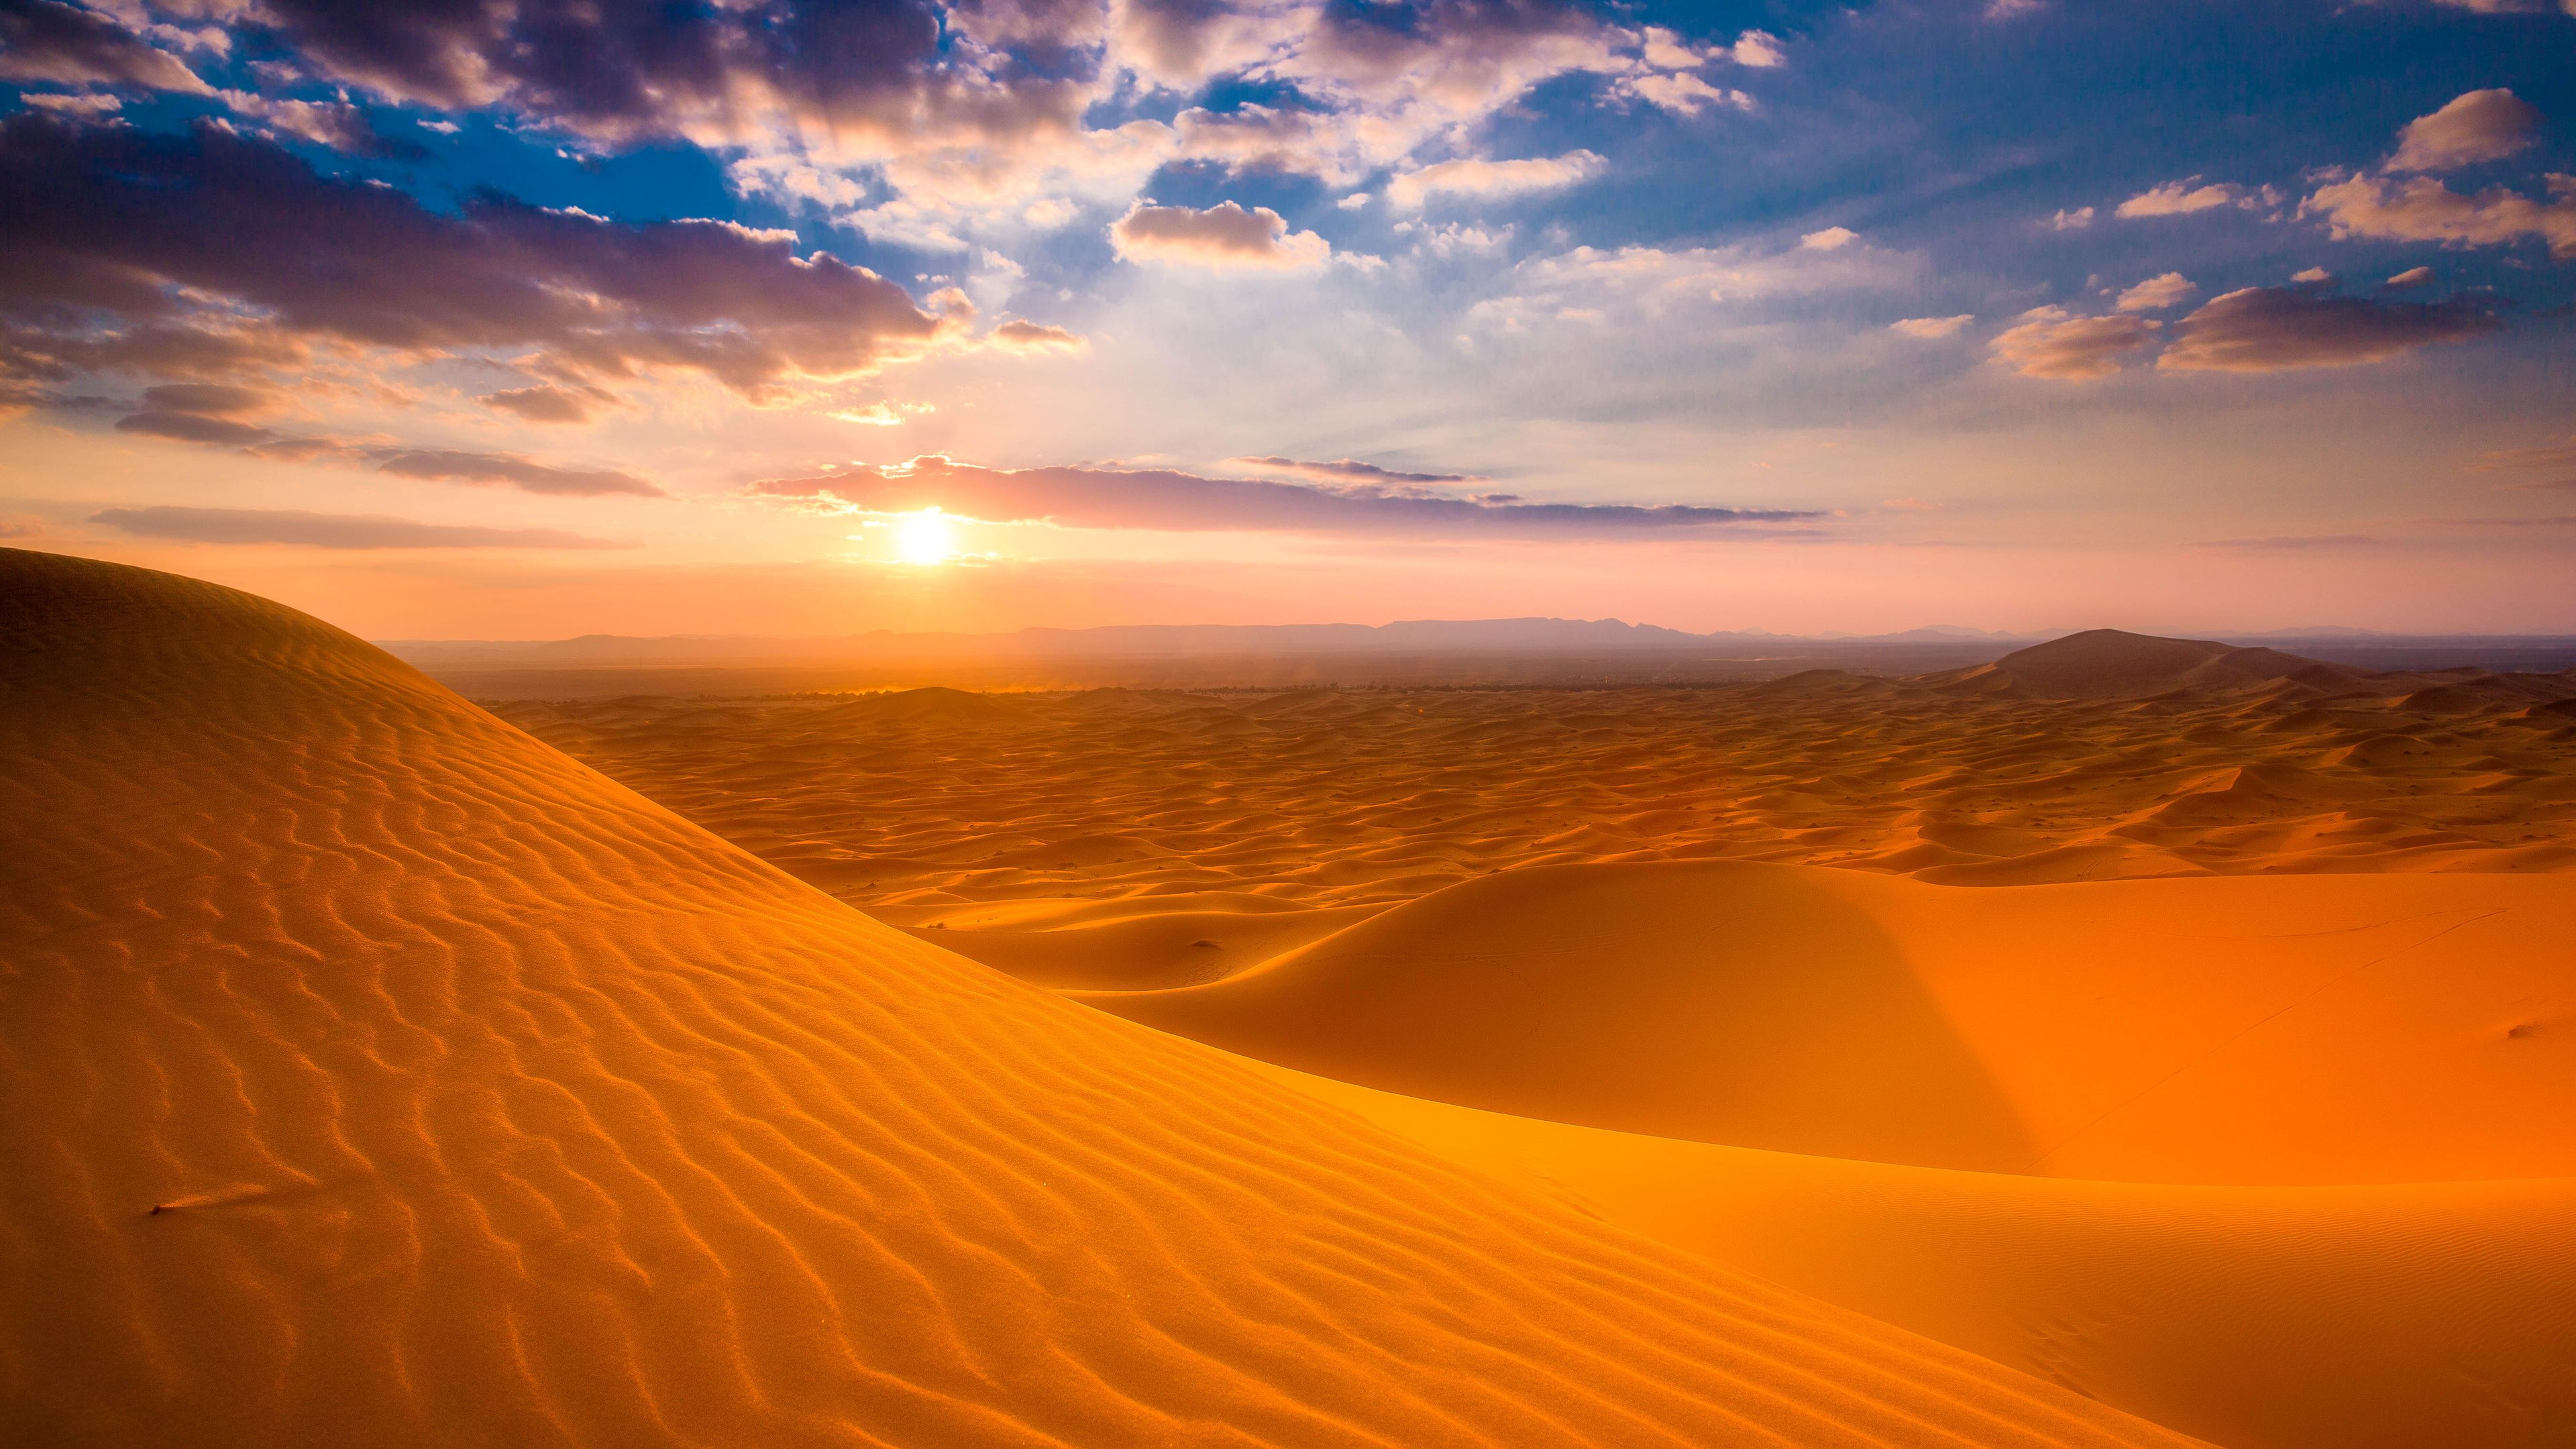 sahara desert sunset wallpapers desktop background high quality